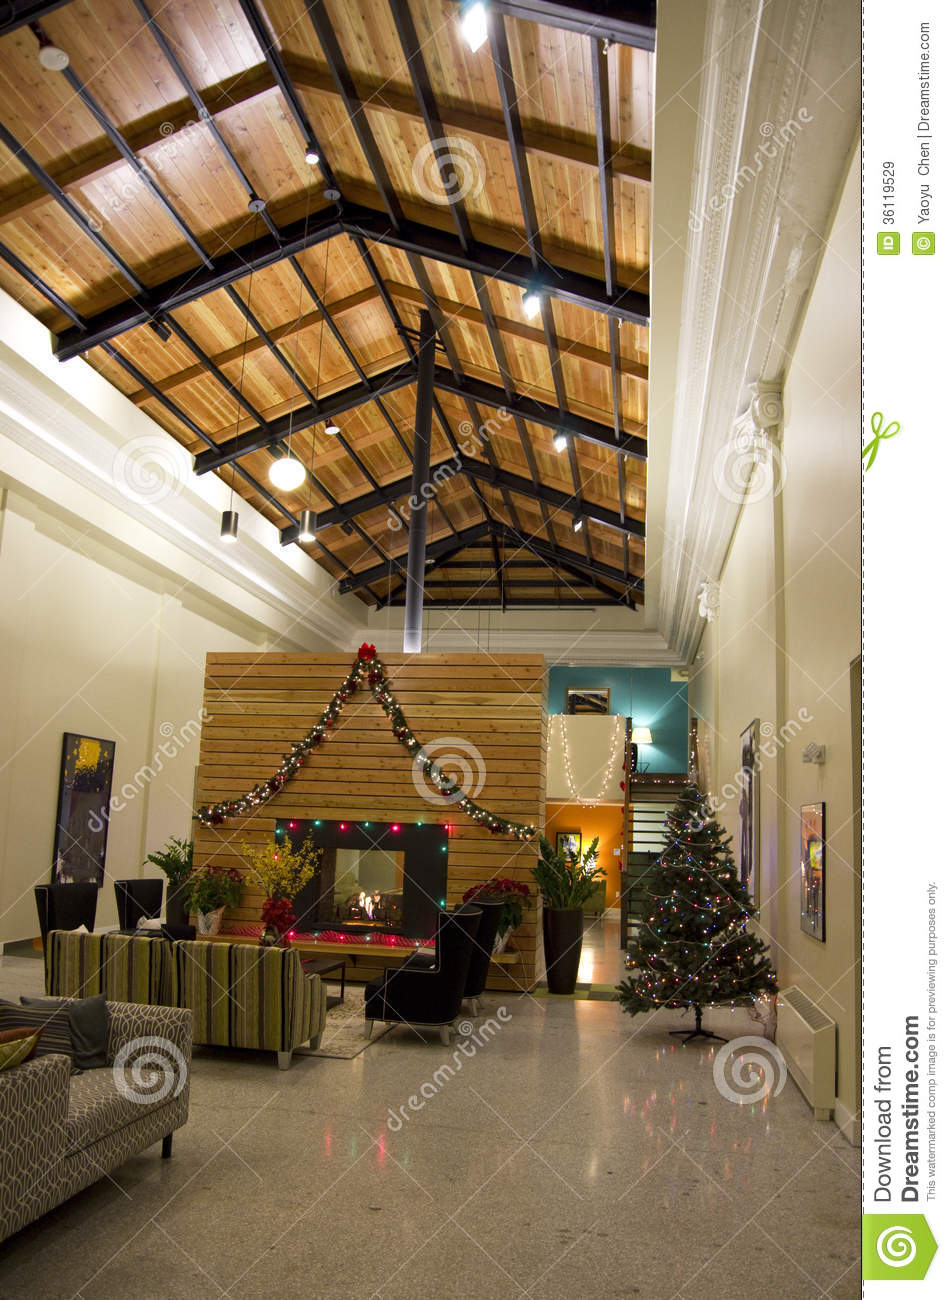 Apartment Lobby Christmas Tree Lights Stock Image Image